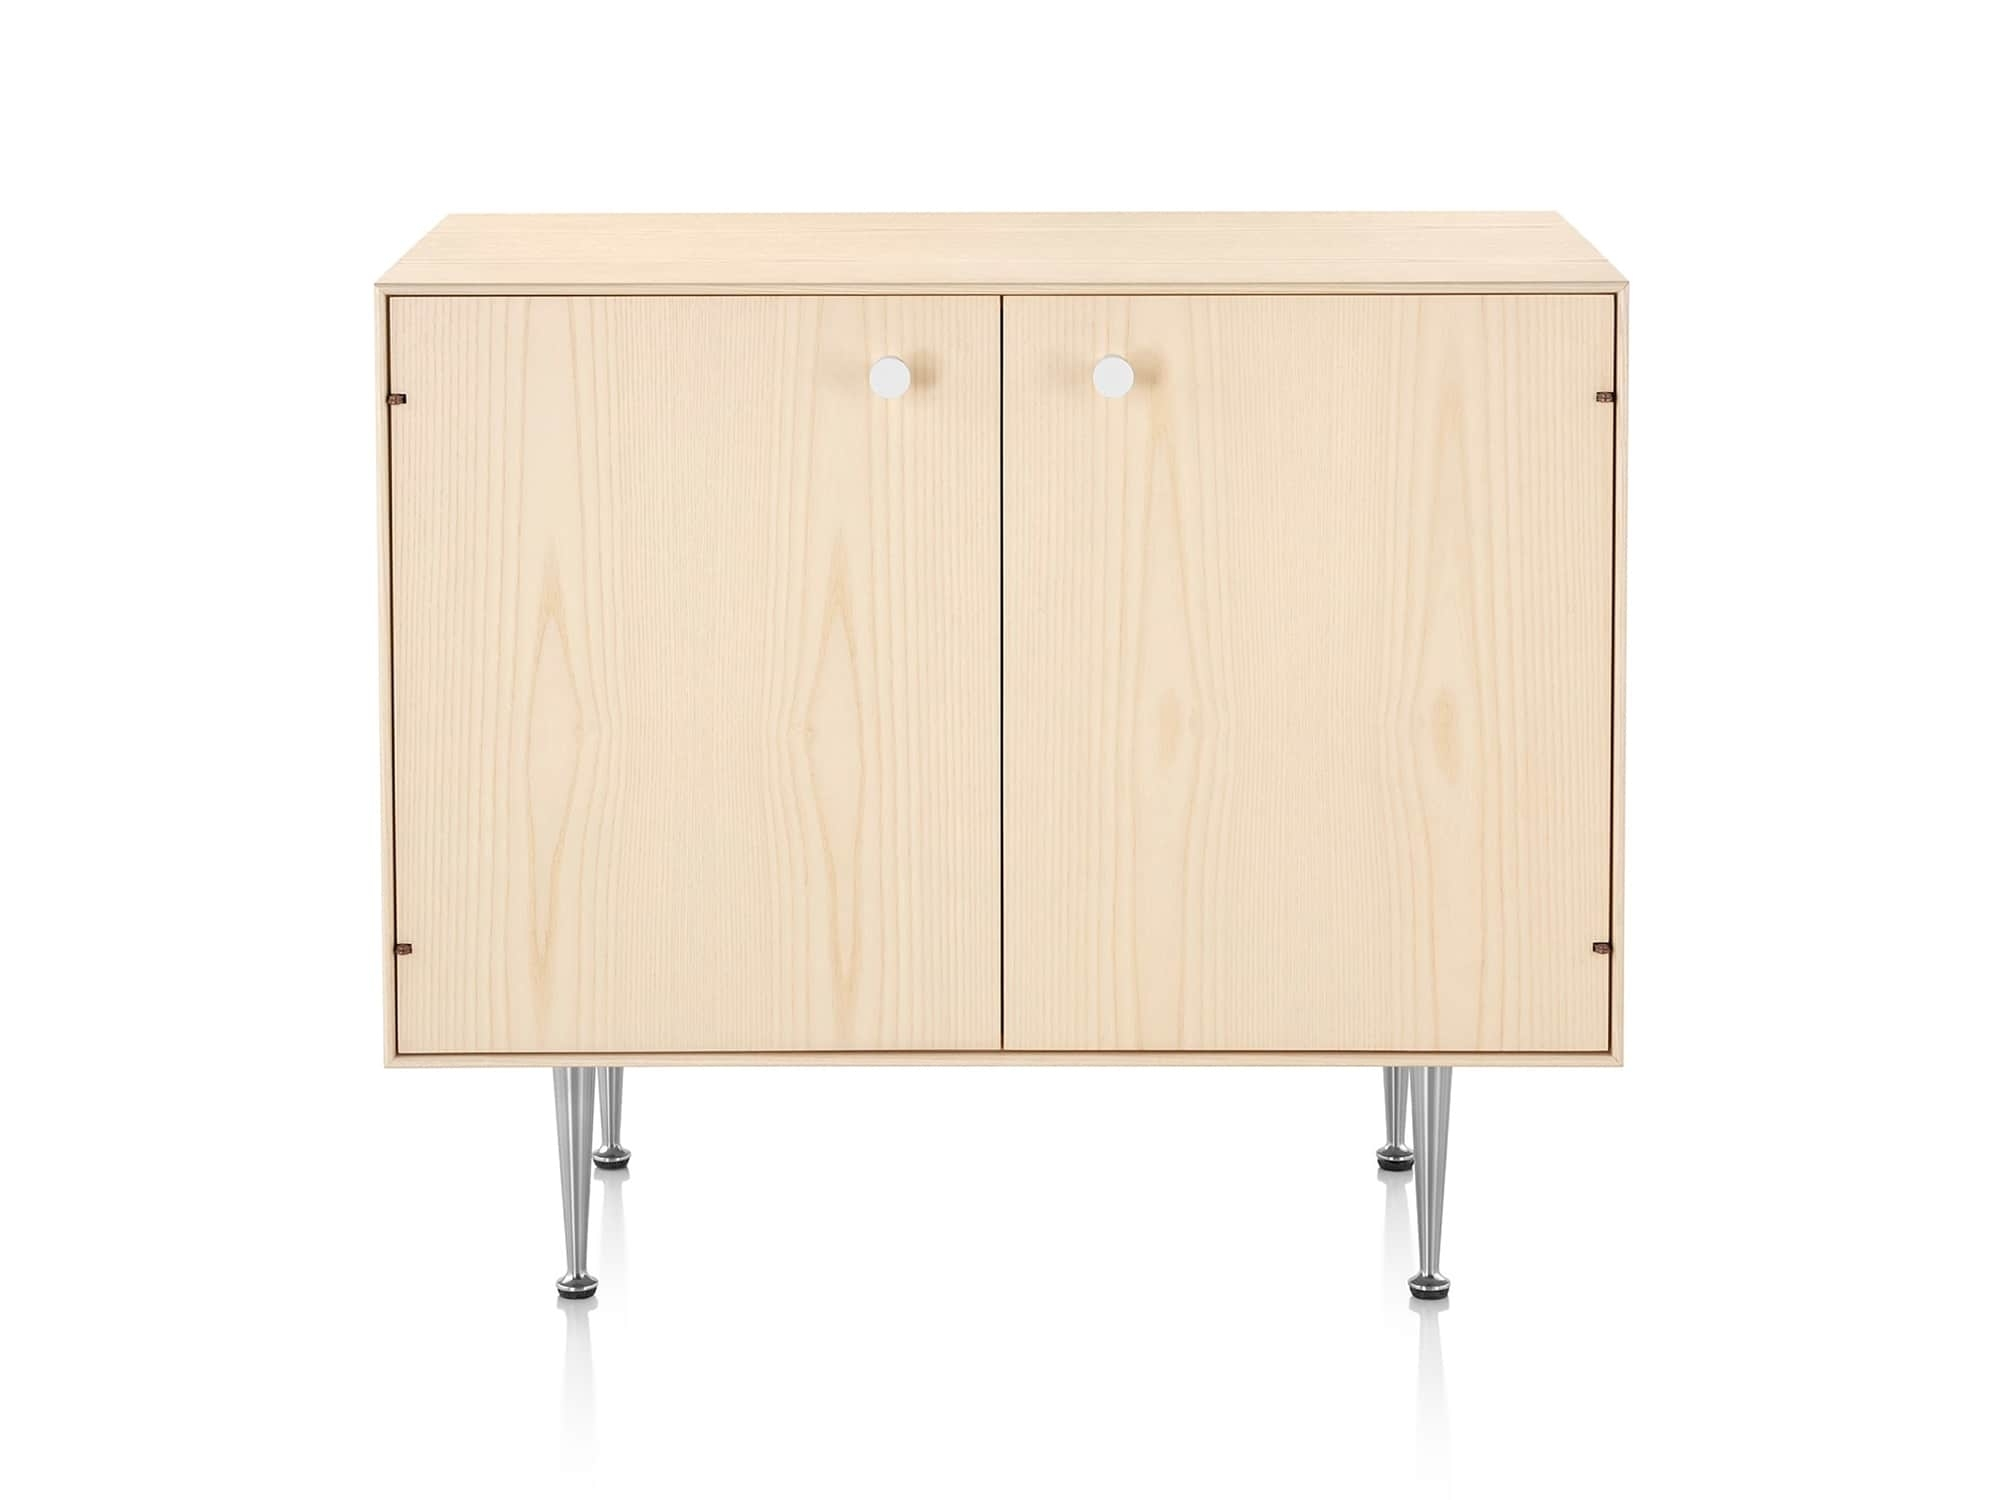 Modern Dressers - Herman Miller Official Store with regard to Girard 4 Door Sideboards (Image 14 of 30)